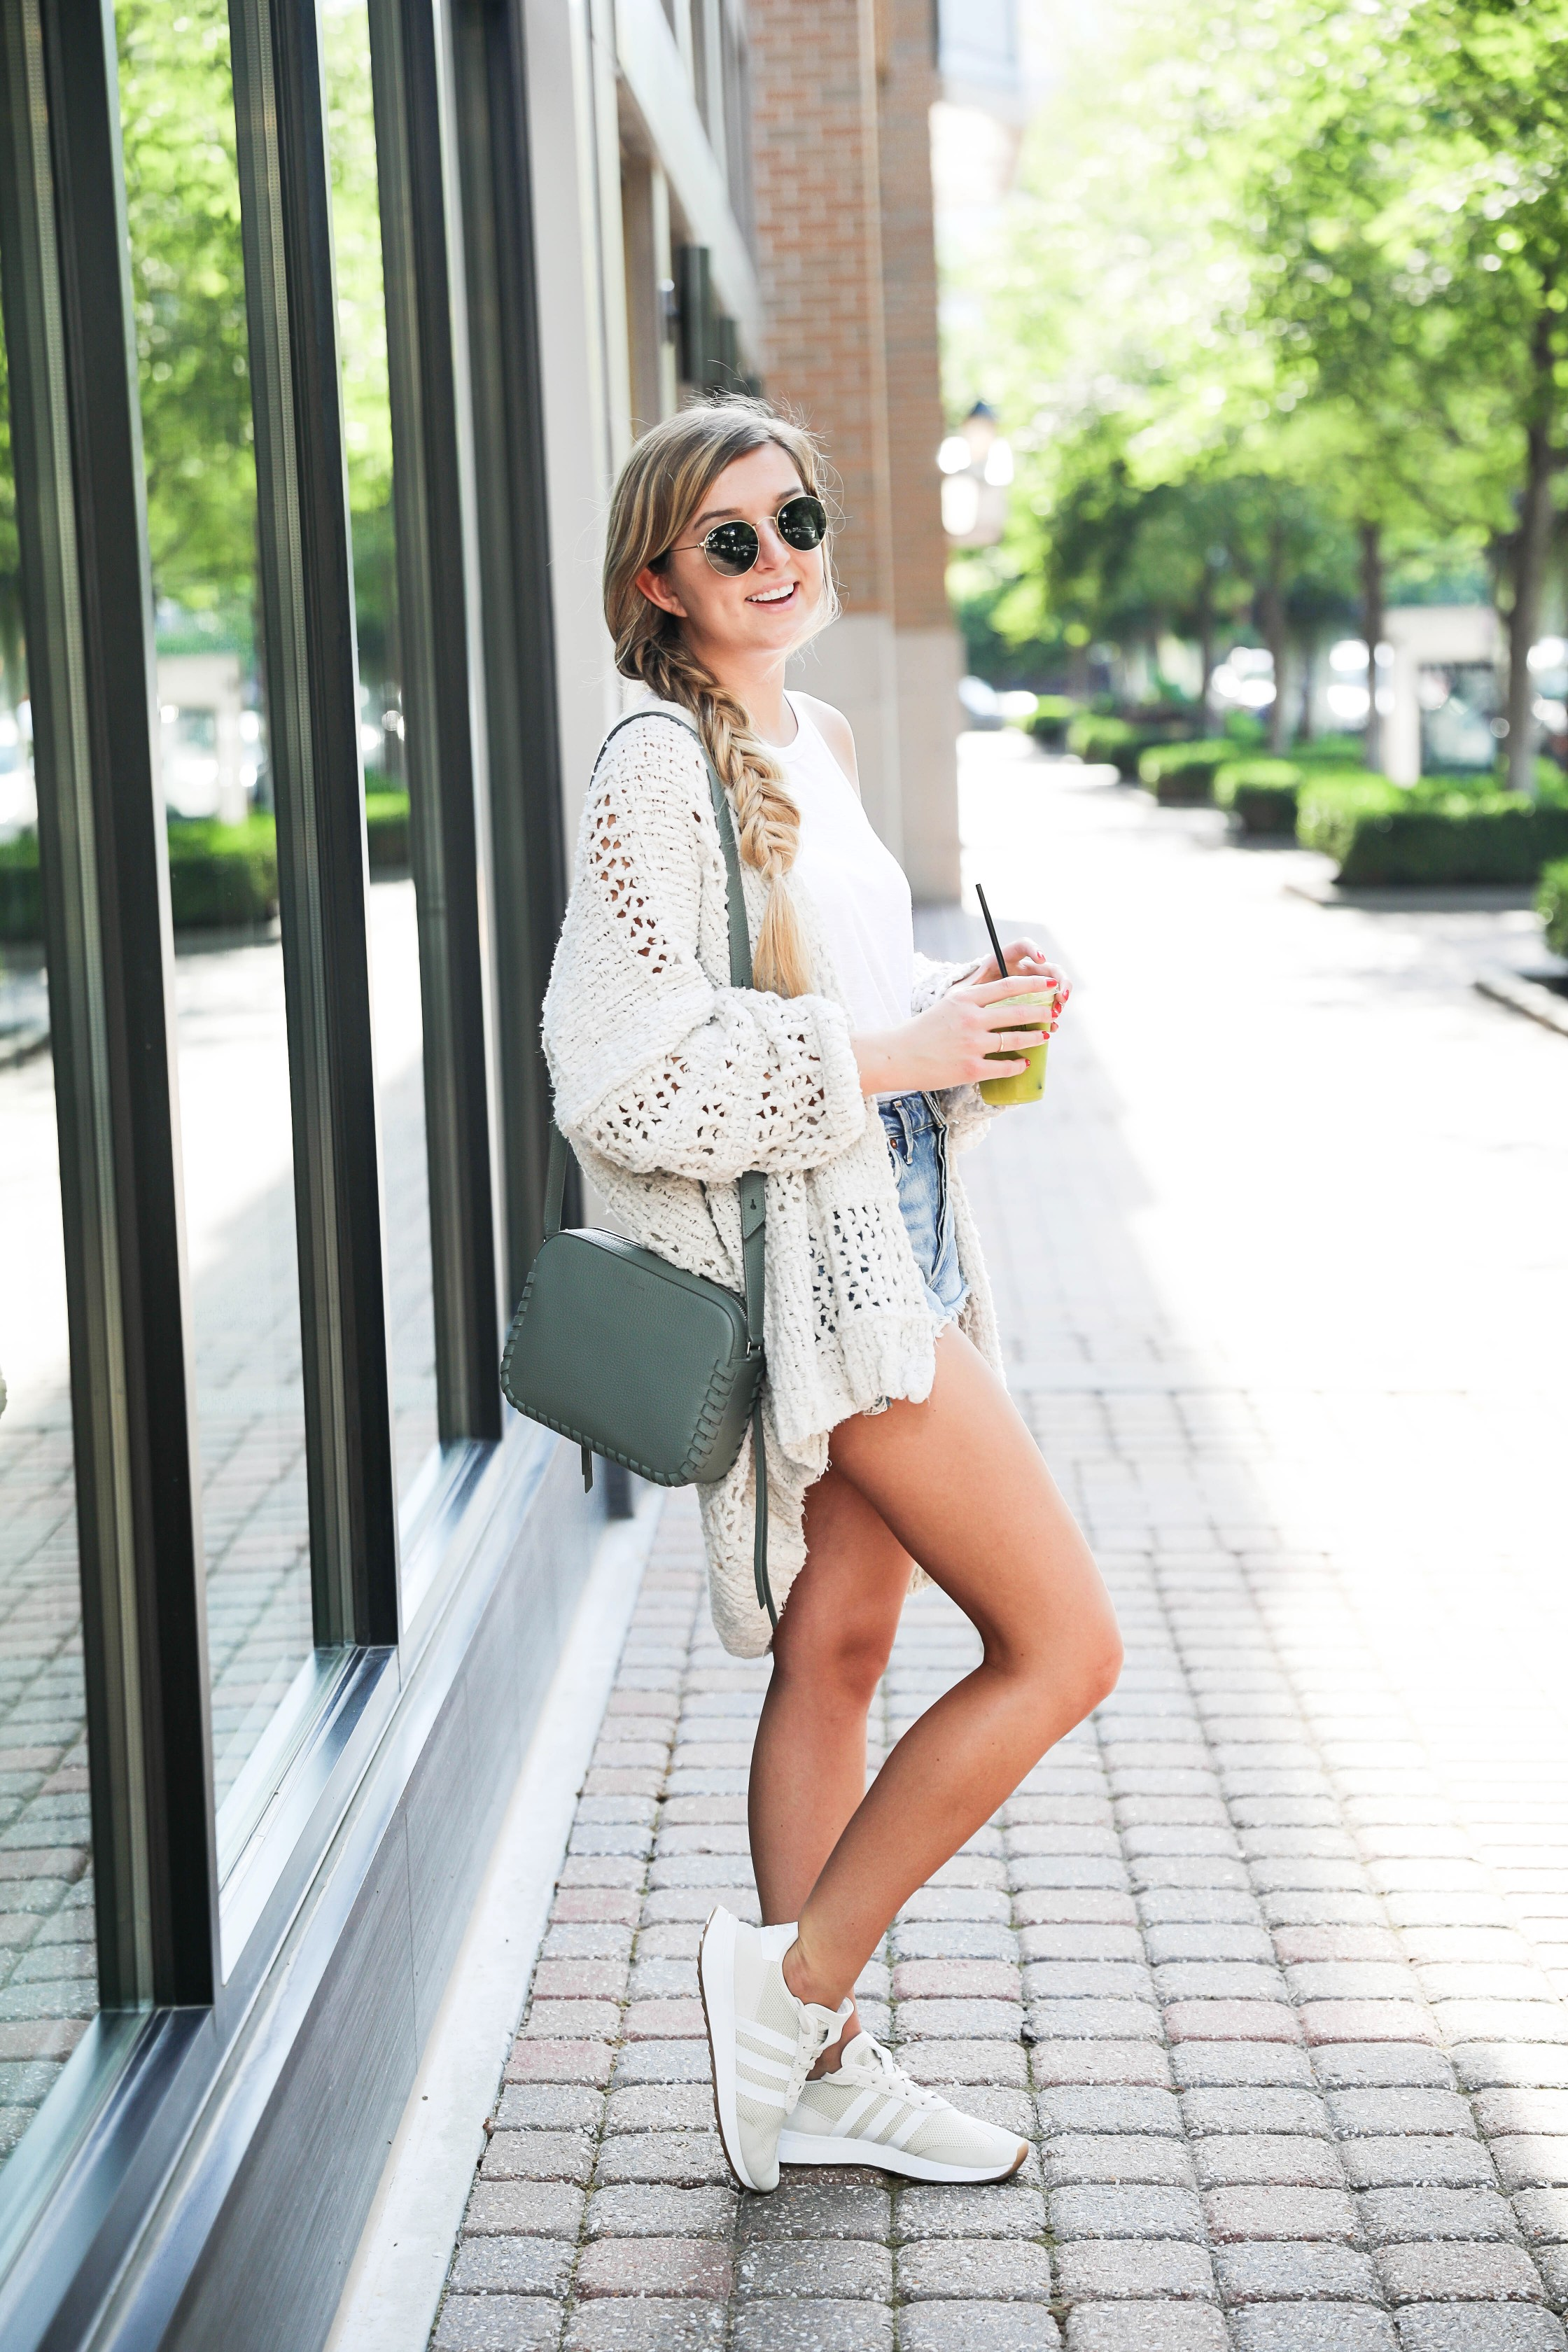 Free People crochet cardigan that comes in three colors! I paired mine with my cute agolde distressed denim jean shorts and allsaints crossbody bag! The cardigan and bag are included in the Nordstrom Anniversary Sale 2018! Finished off the look with my Adidas sneakers and a T.Loft Juice! Details on fashion blog daily dose of charm by lauren lindmark